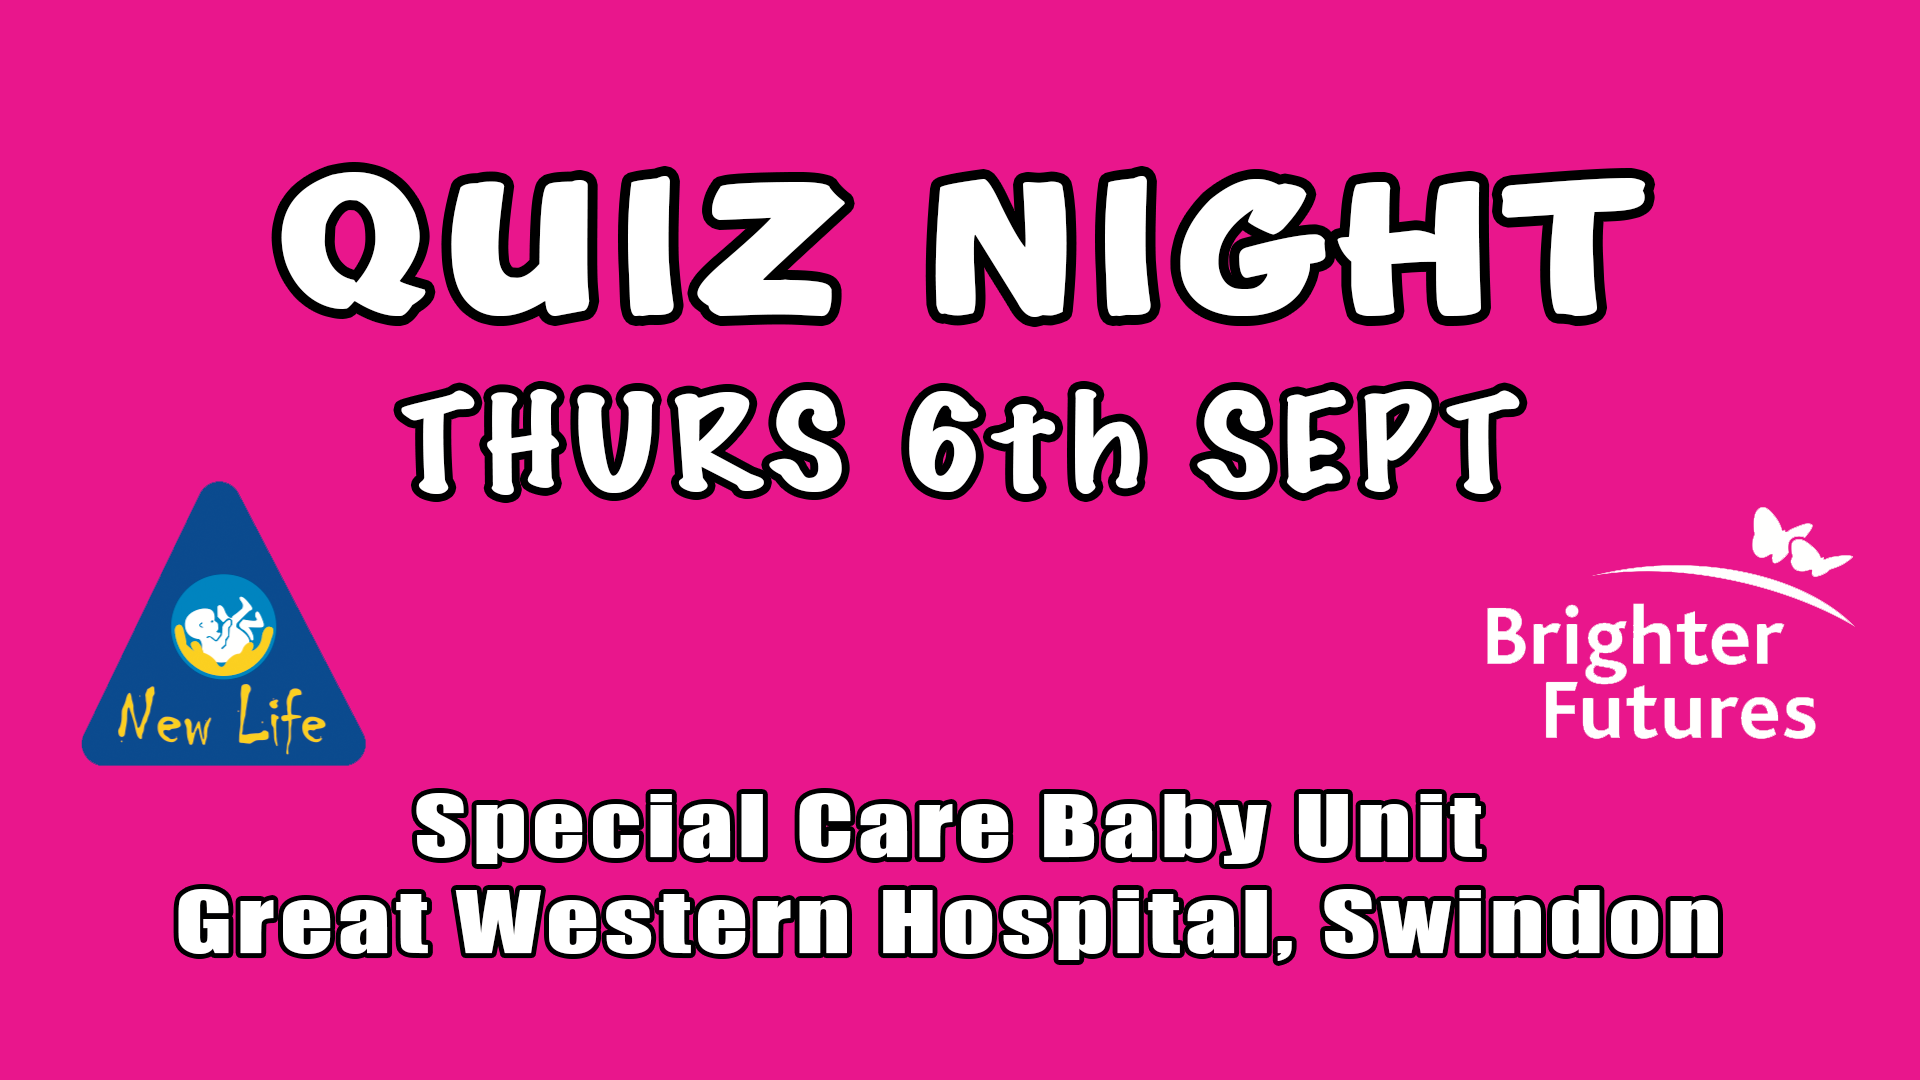 Charity Quiz Night - Special Care Baby Unit, GWH